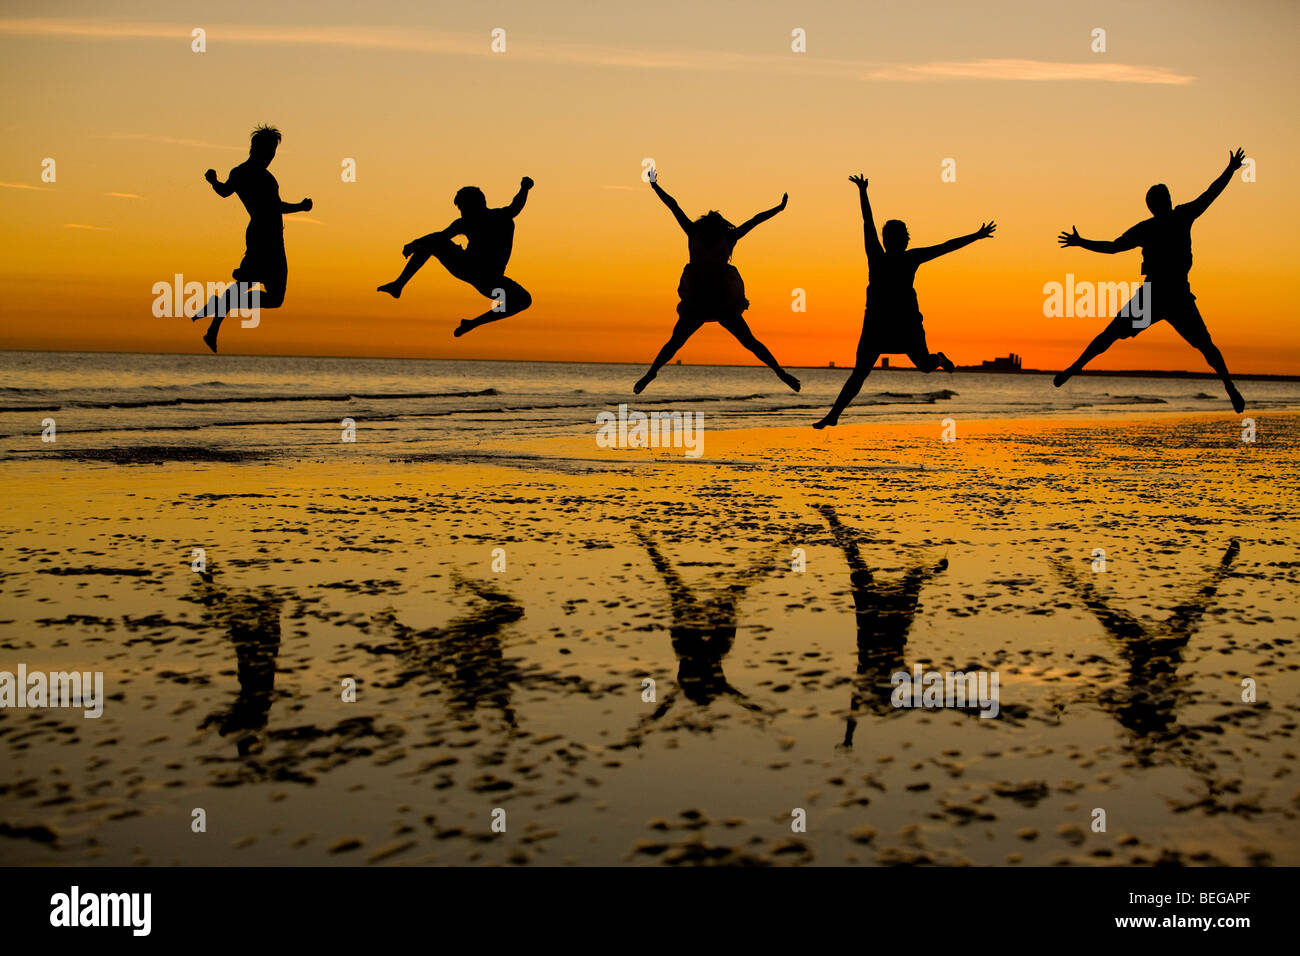 Friends enjoying a good time at the beach. - Stock Image